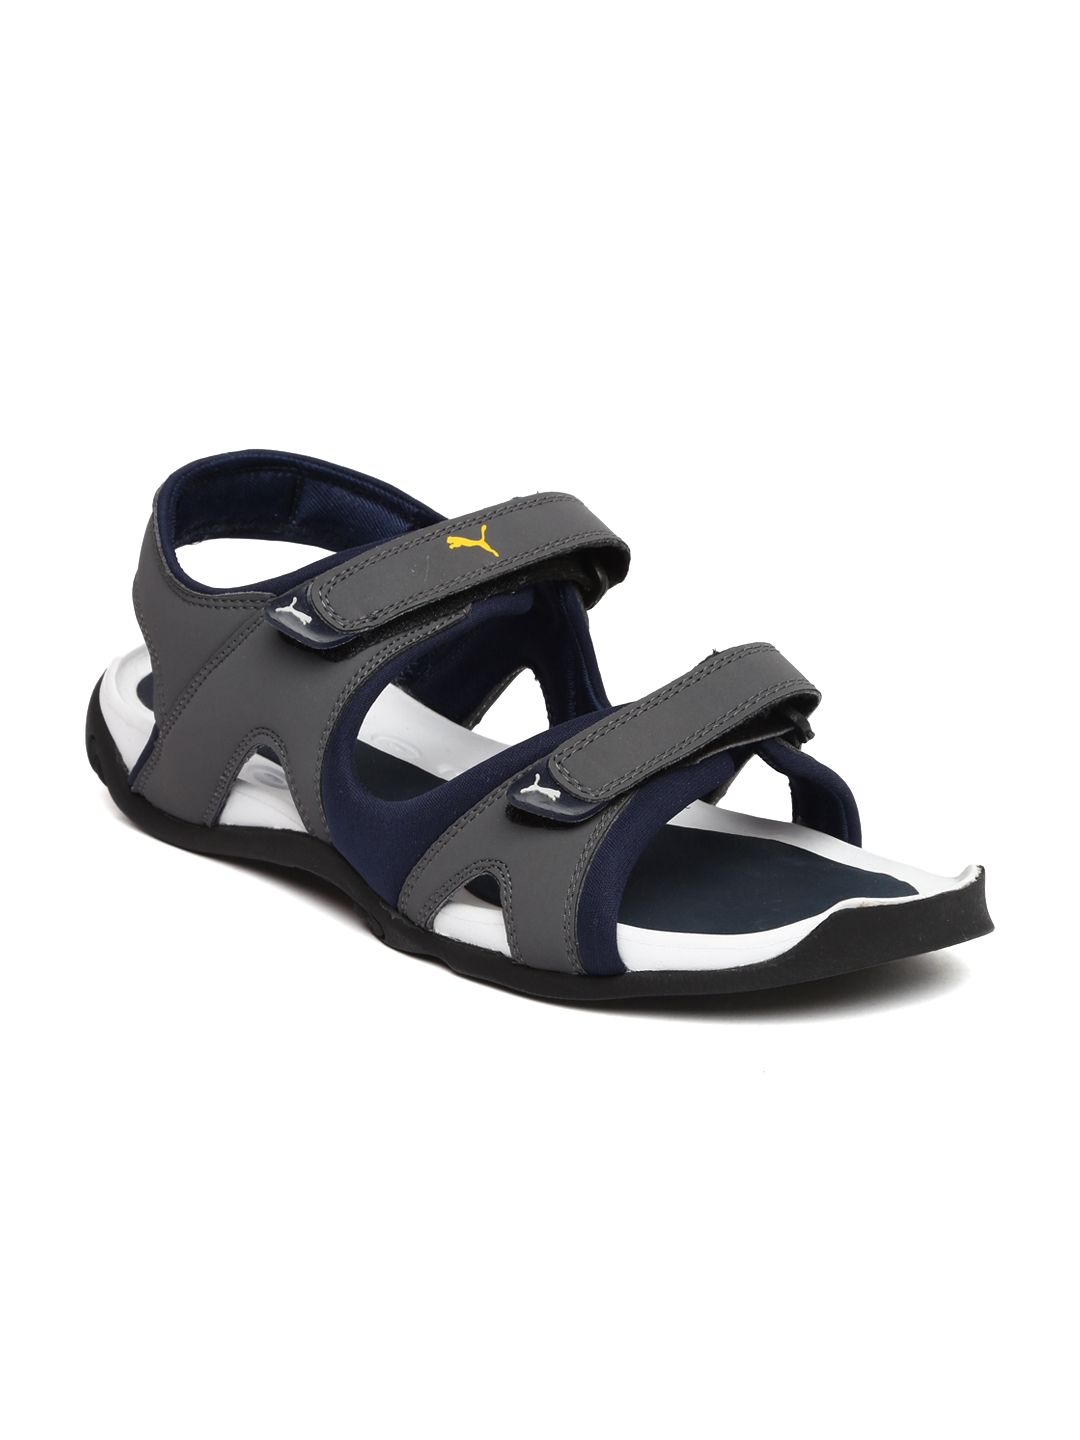 0701d26be283 Buy Puma Men Grey   Navy Jimmy Sports Sandals - Sports Sandals for Men  2041465